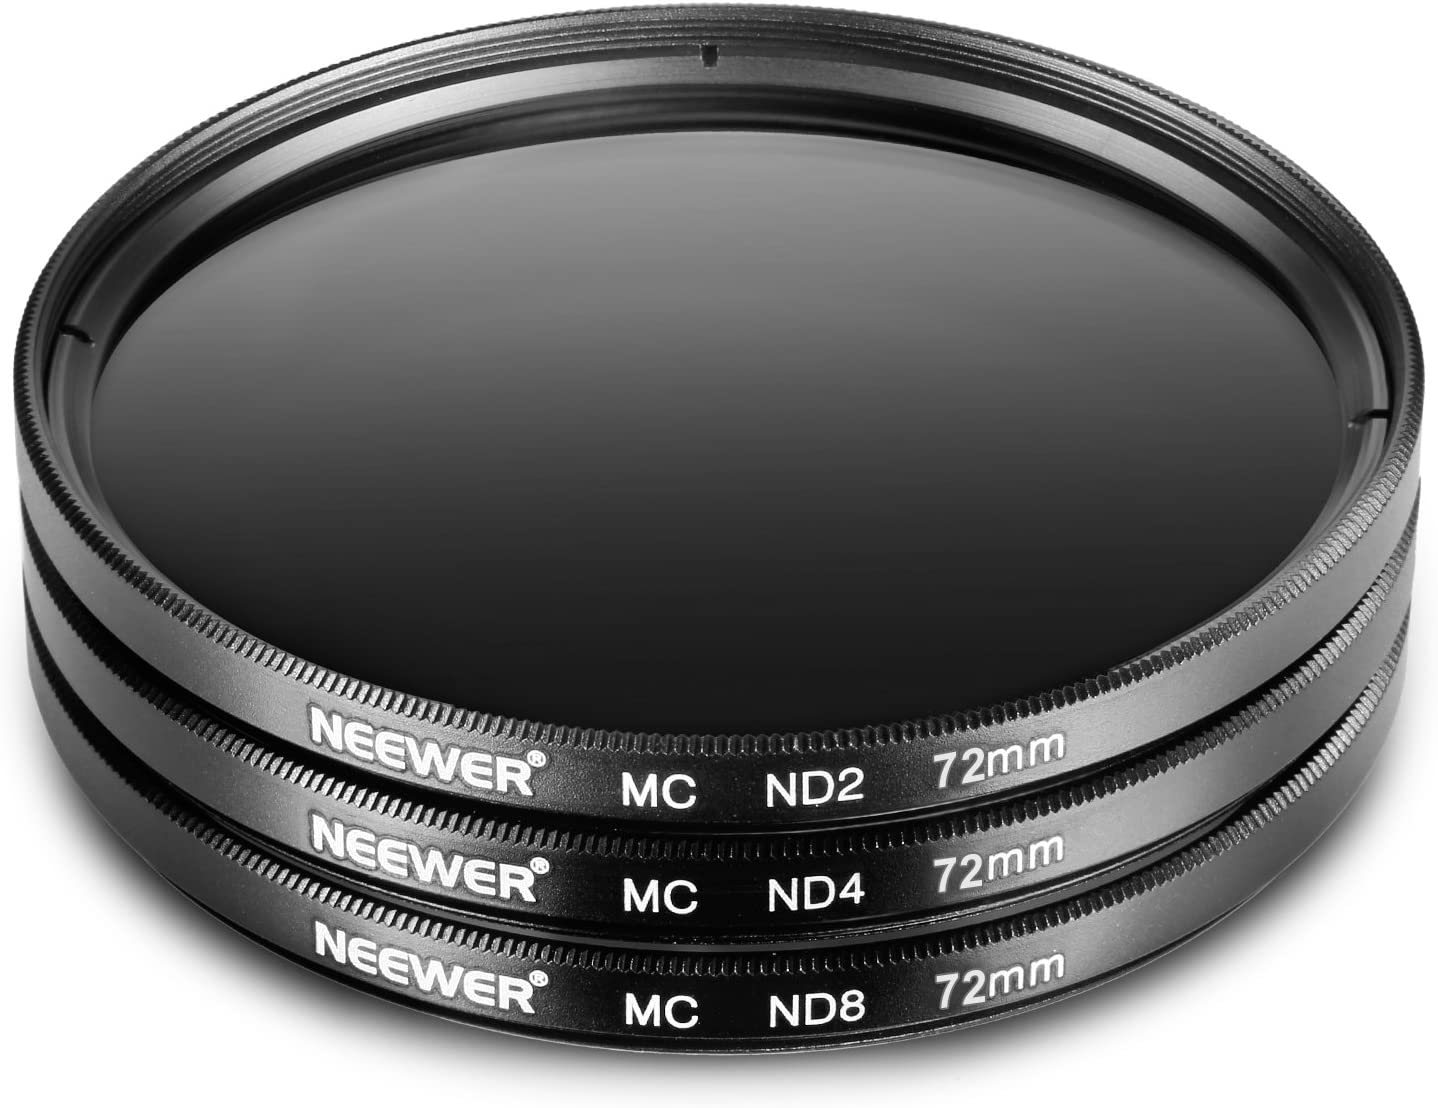 for Olympus PEN E-PL2 E-PL3 E-PL5 E-PL6,OM-D E-M10 Compact Cameras w//14-42mm f//3.5-5.6 II Zoom Lens ND2 ND4 ND8 Neewer 37MM ND Filter Set